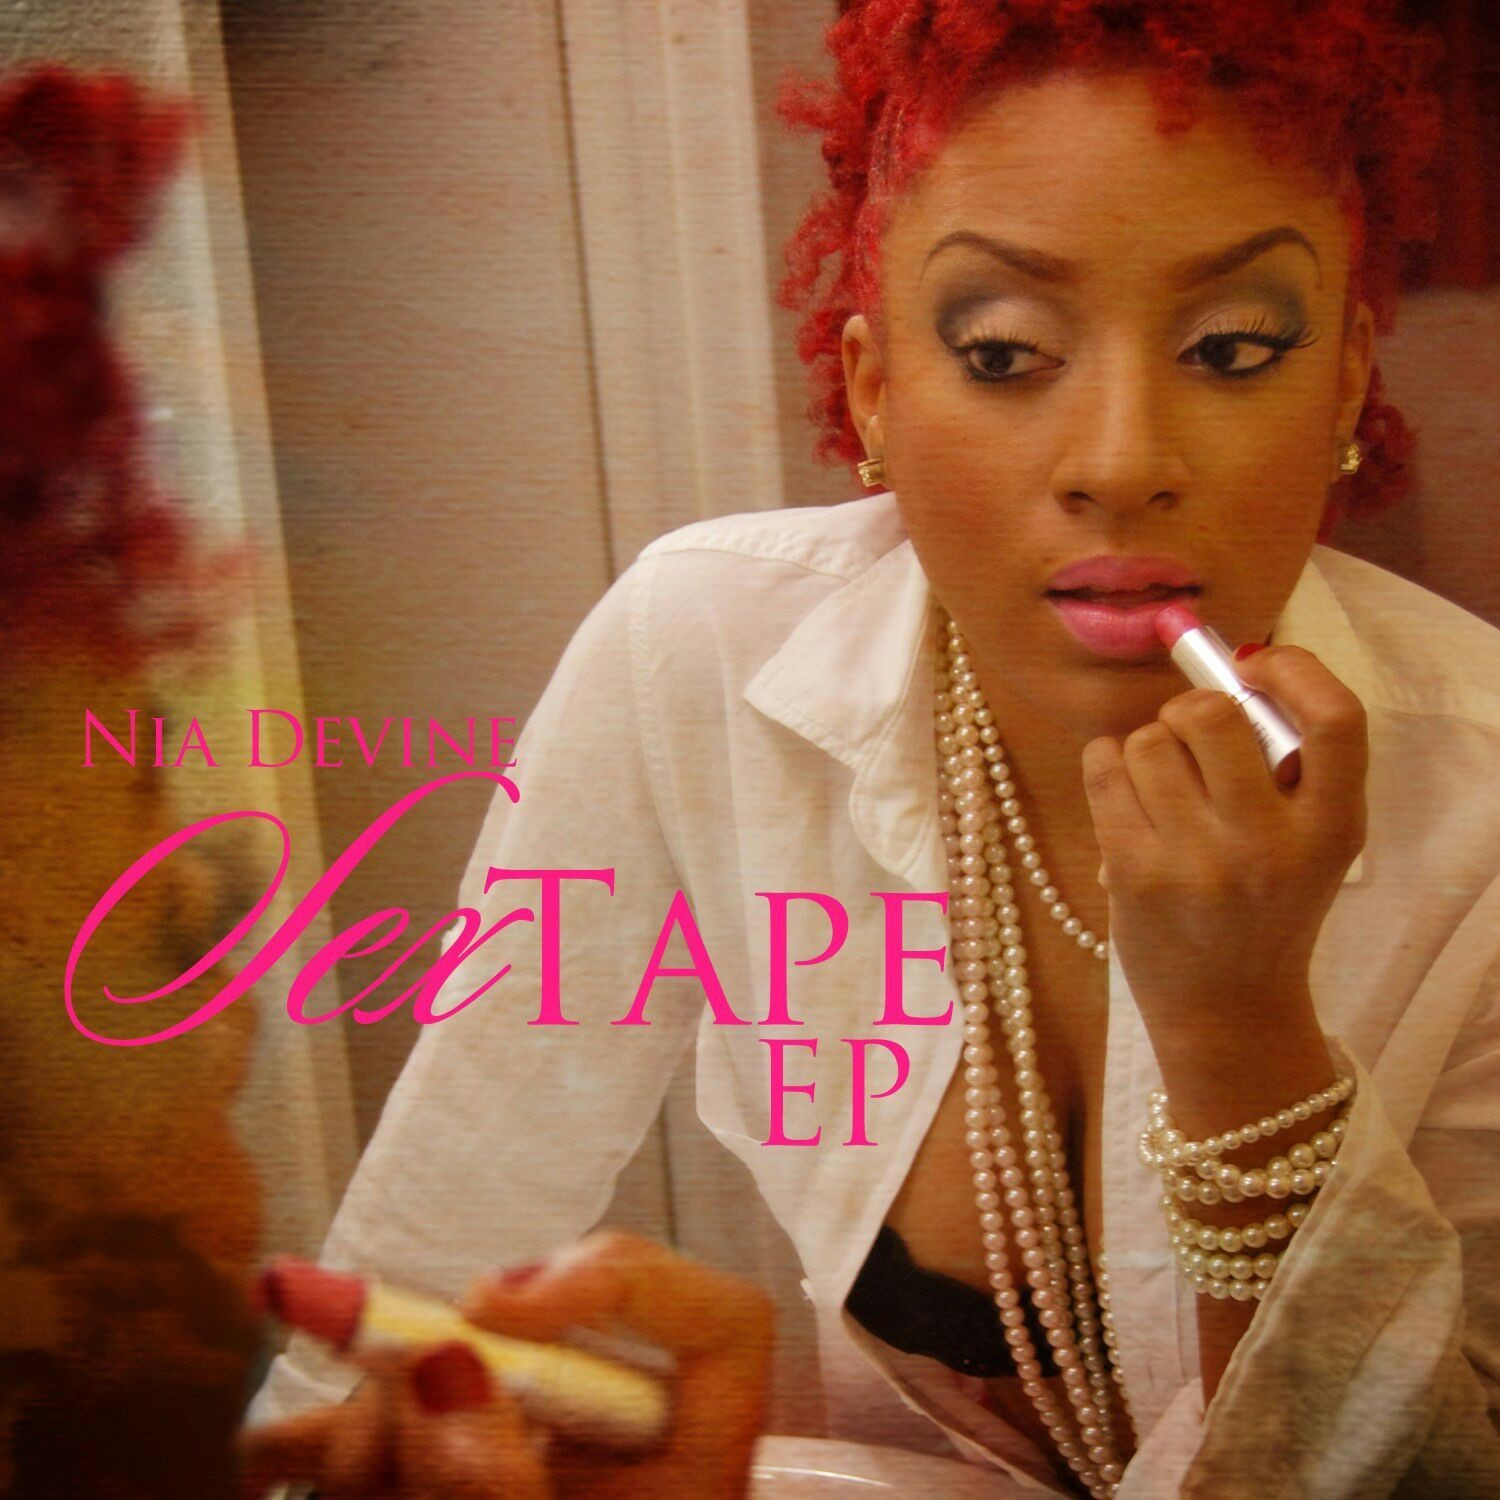 February 14, 2014 @NiaDevine1 is releasing her highly anticipated #SextapeEP which will be available for download via iTunes #NiaIsDevine